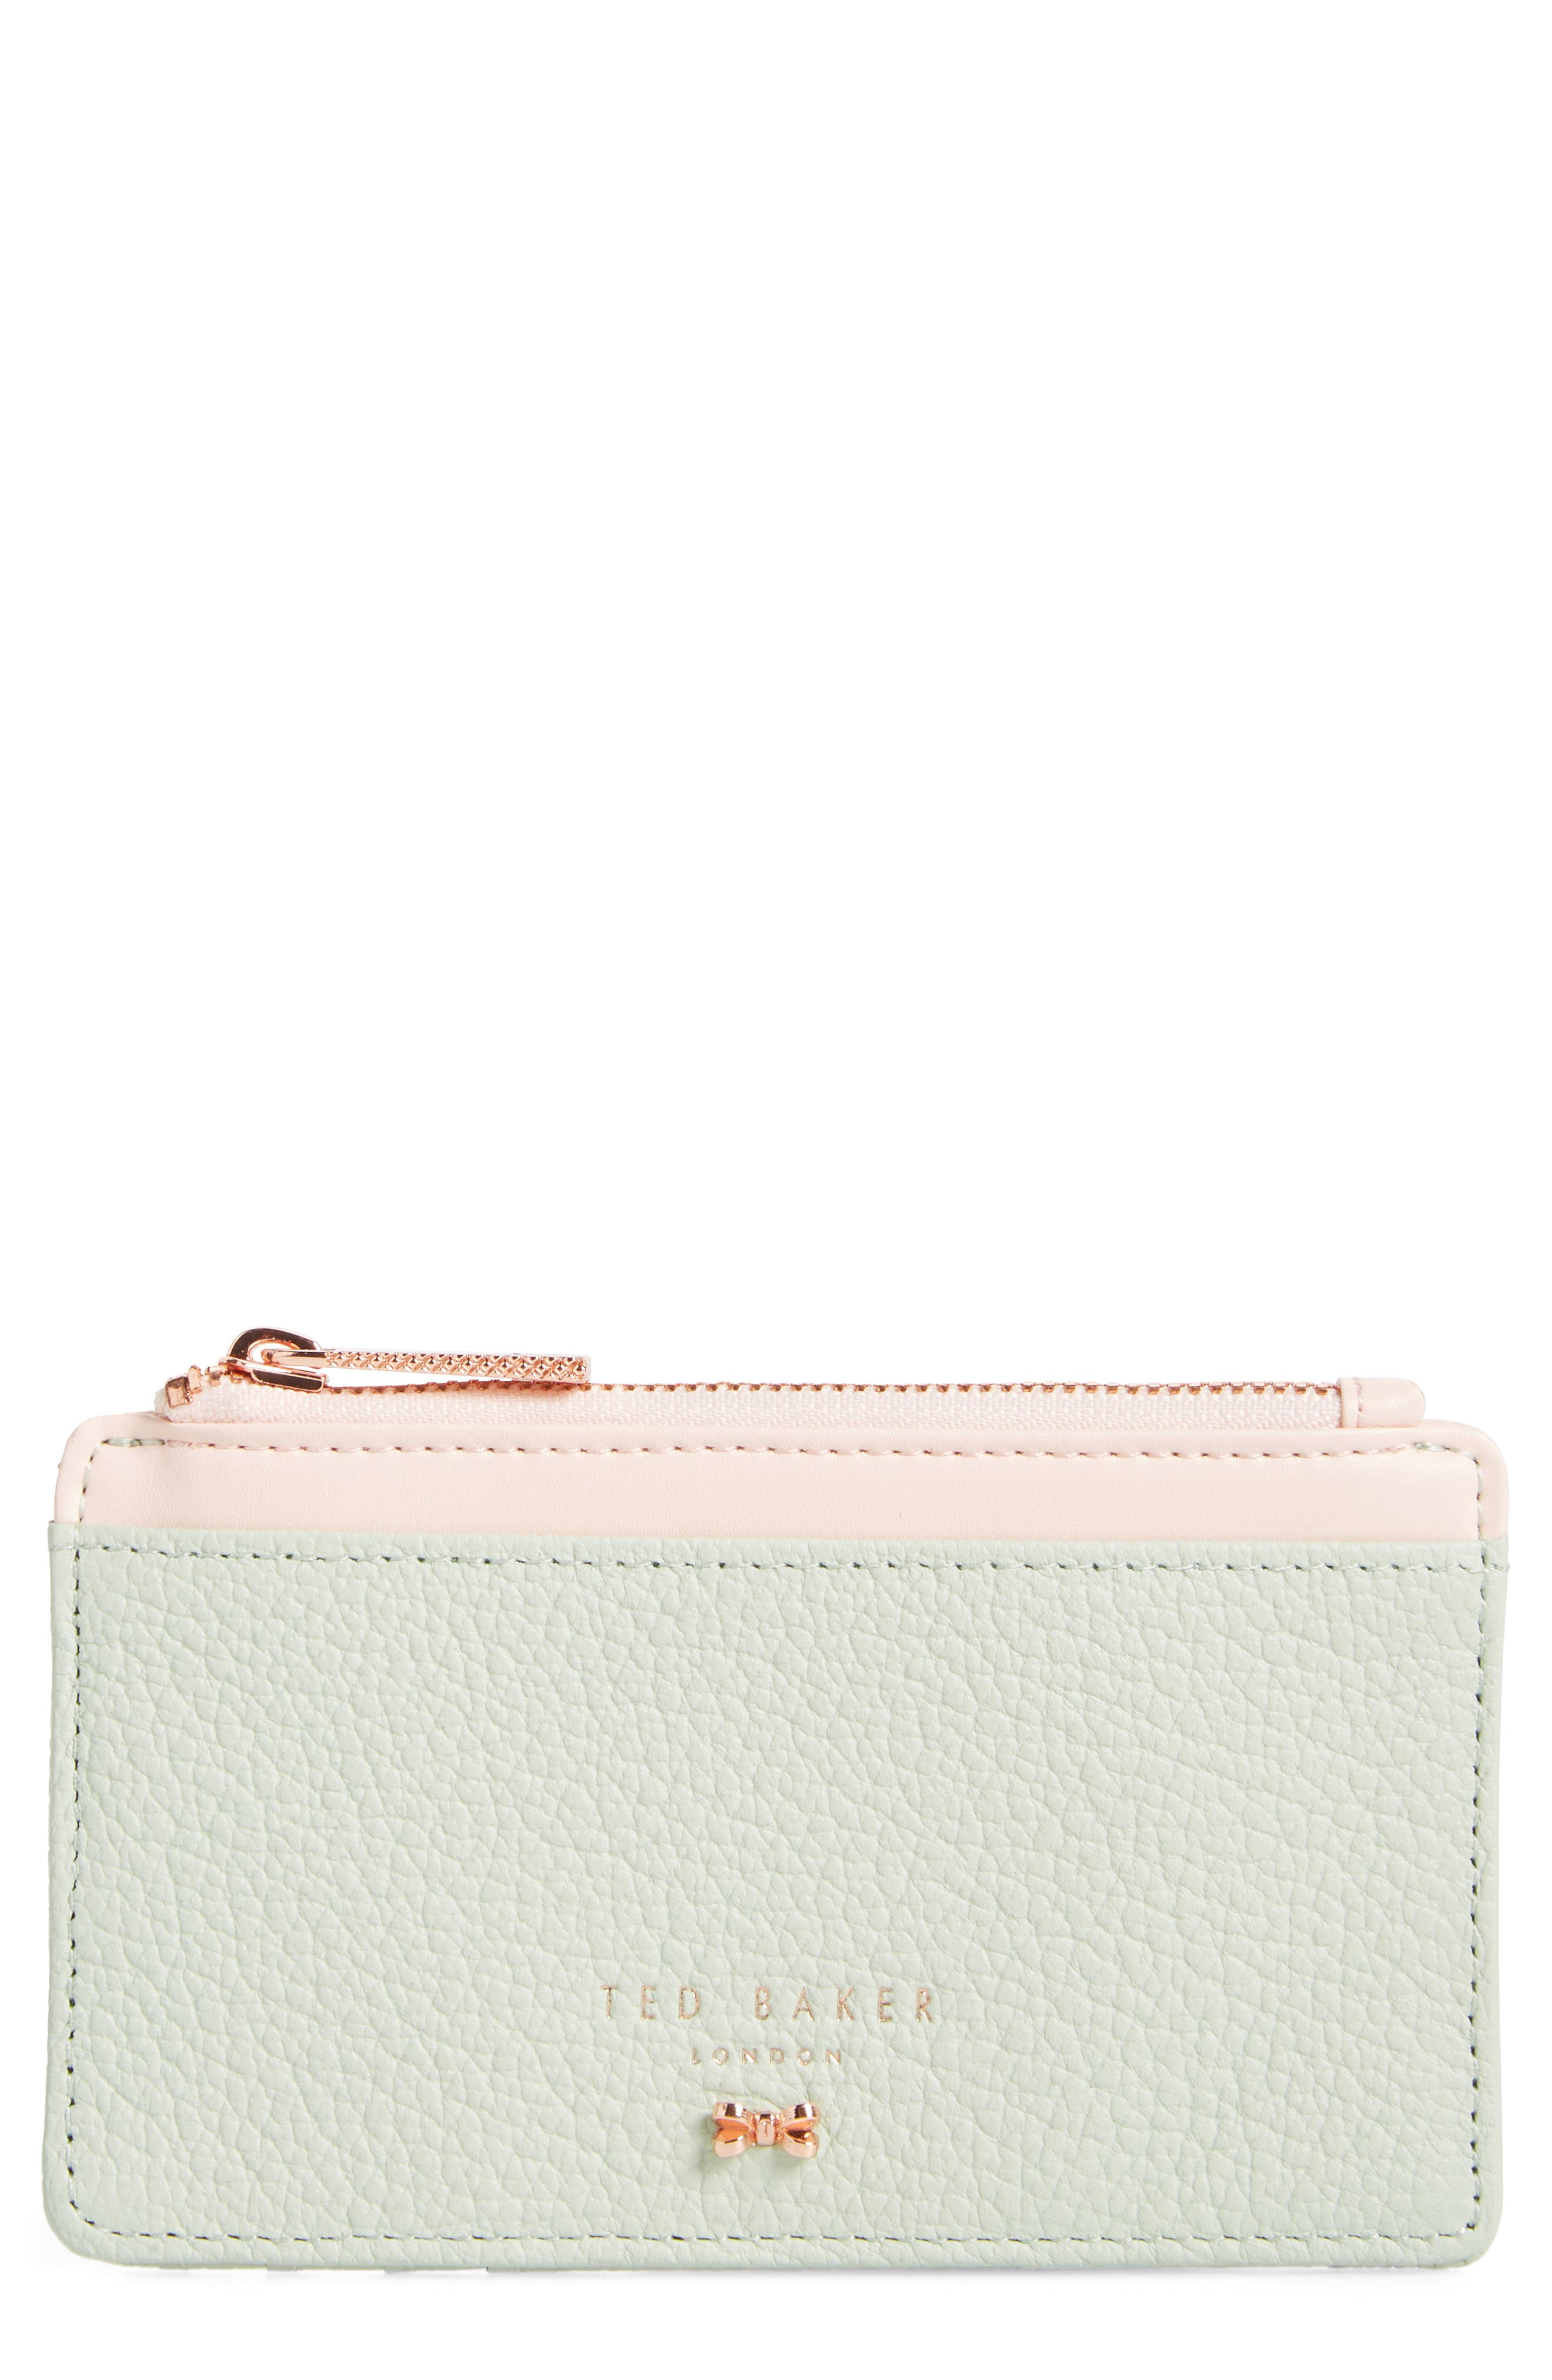 Alica Top Zip Leather Card Case,                             Main thumbnail 1, color,                             300